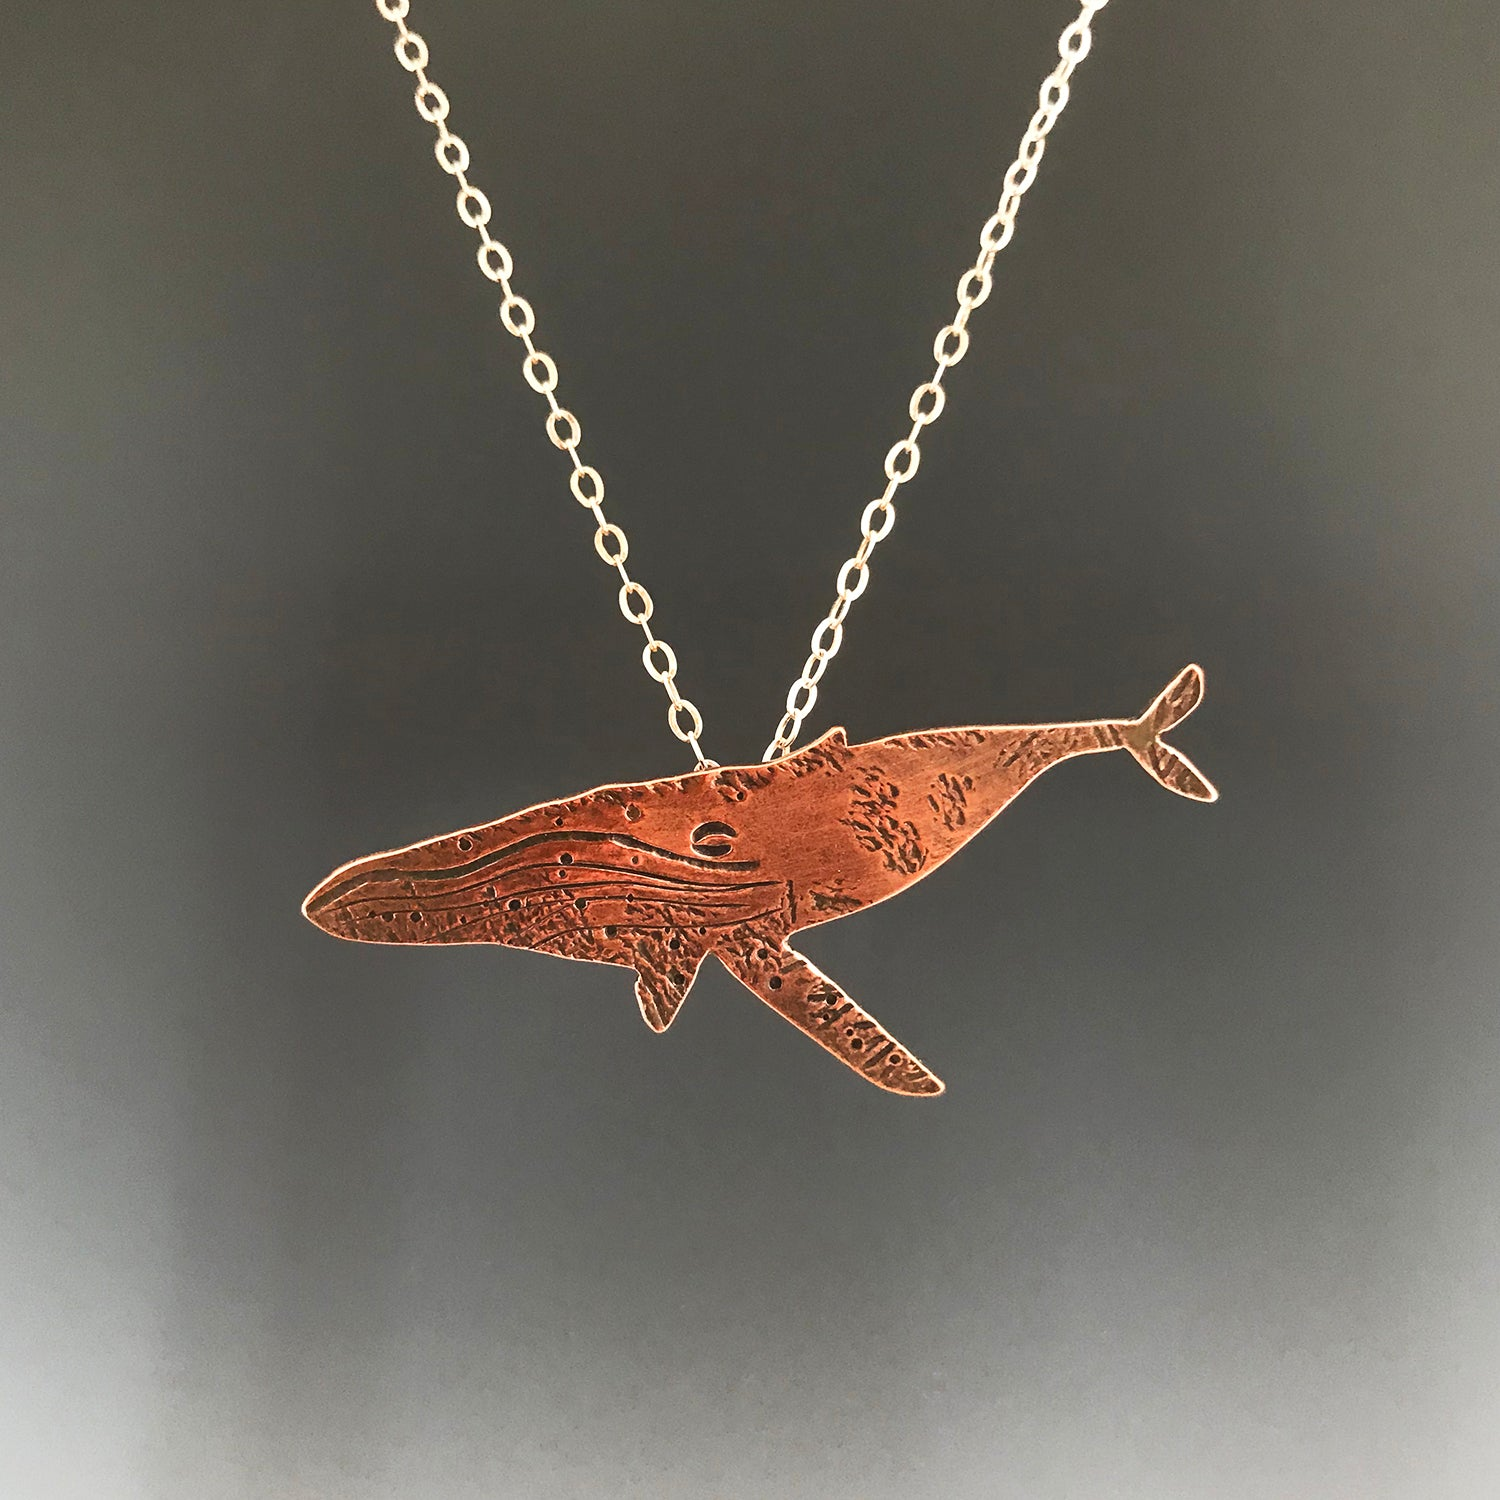 Familiars Animal Necklace - Whale